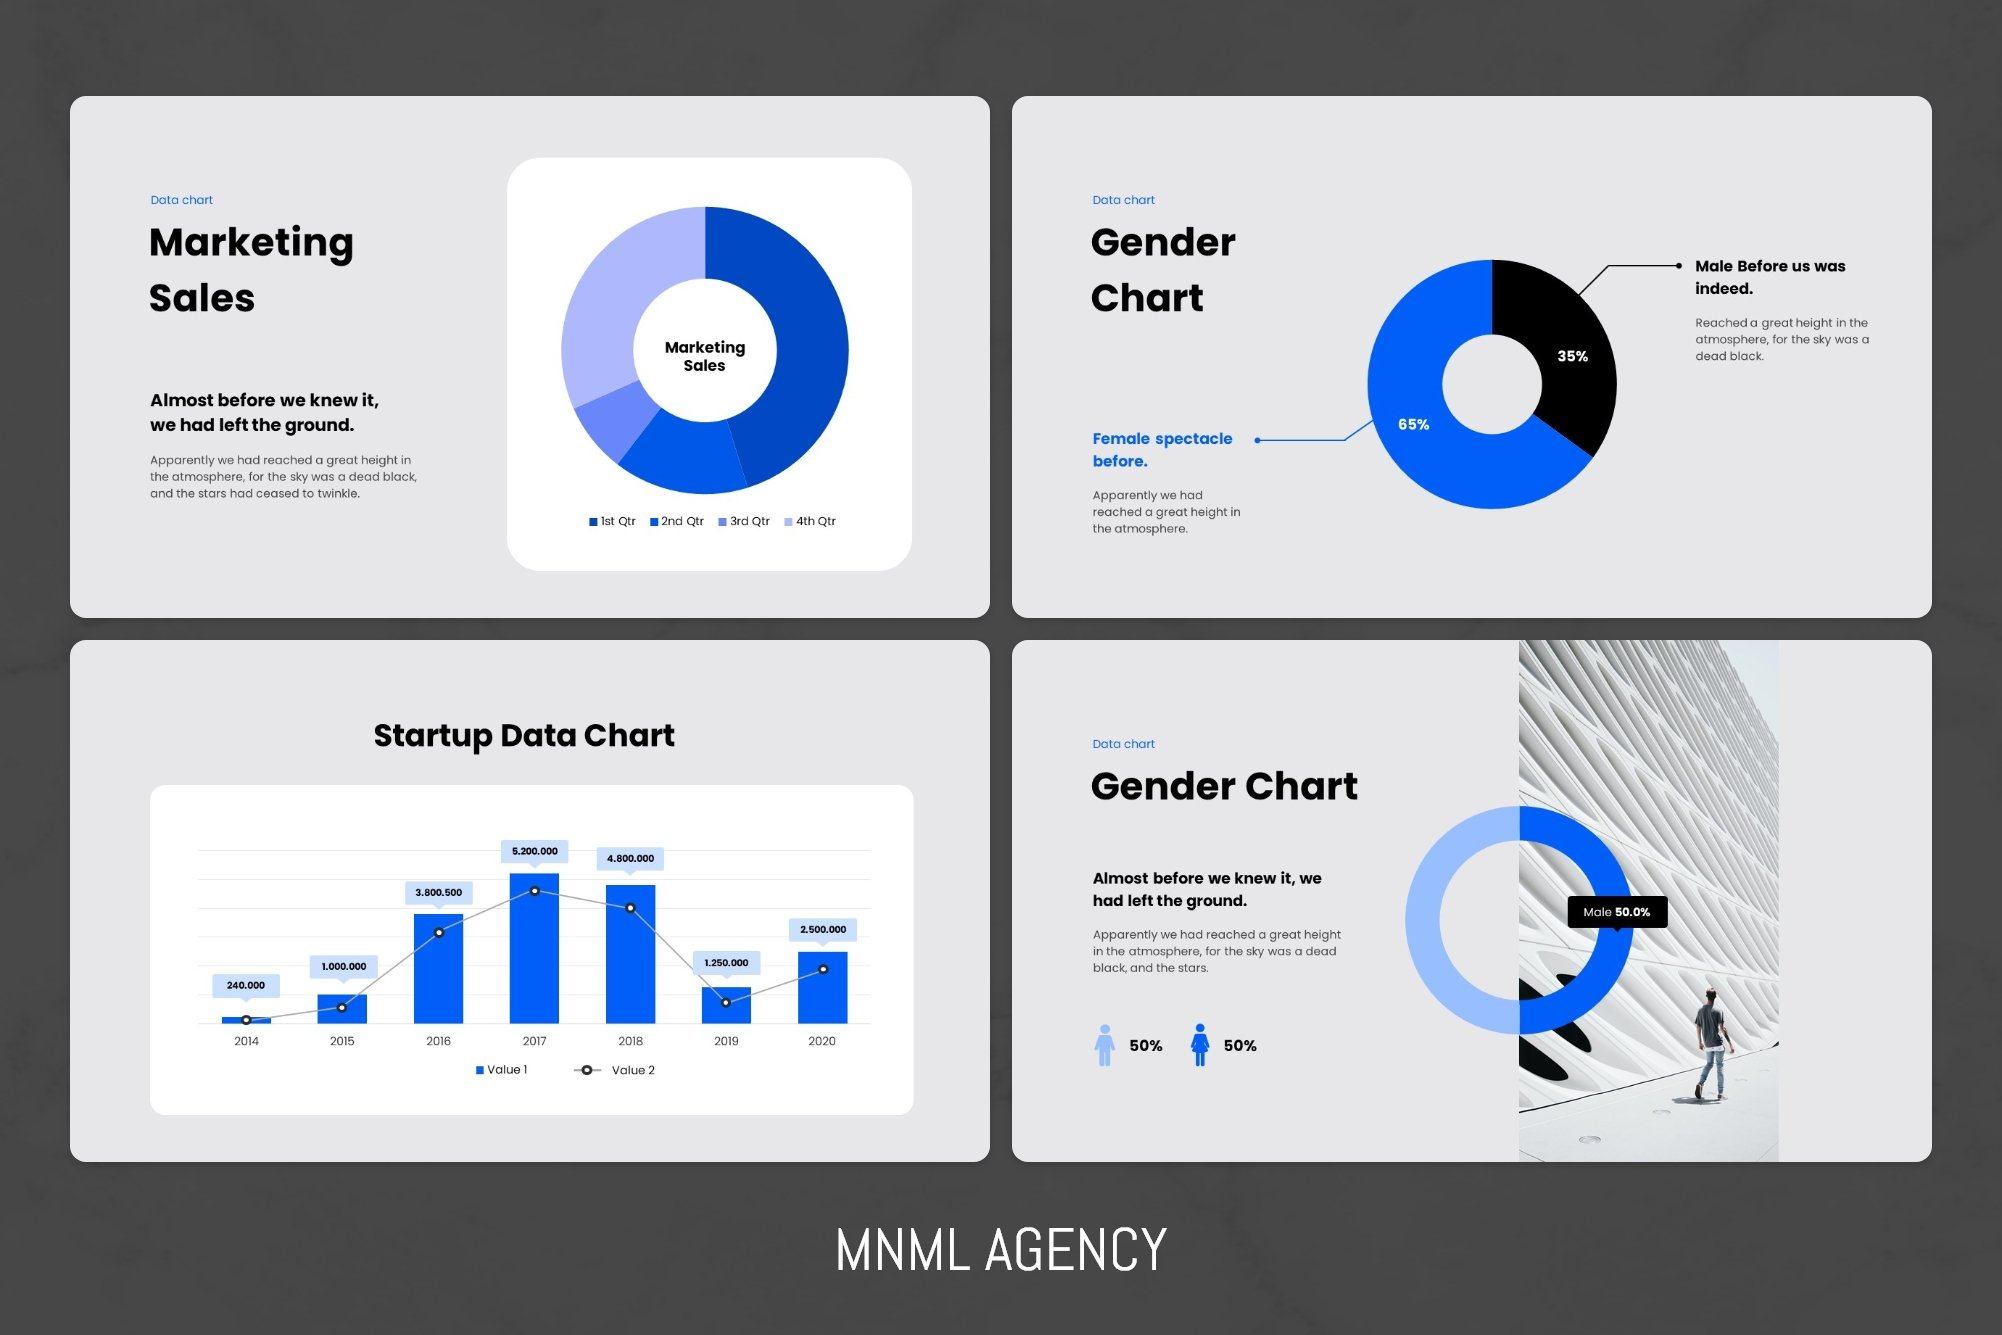 You can choose any type of chart and customize its color palette for yourself.